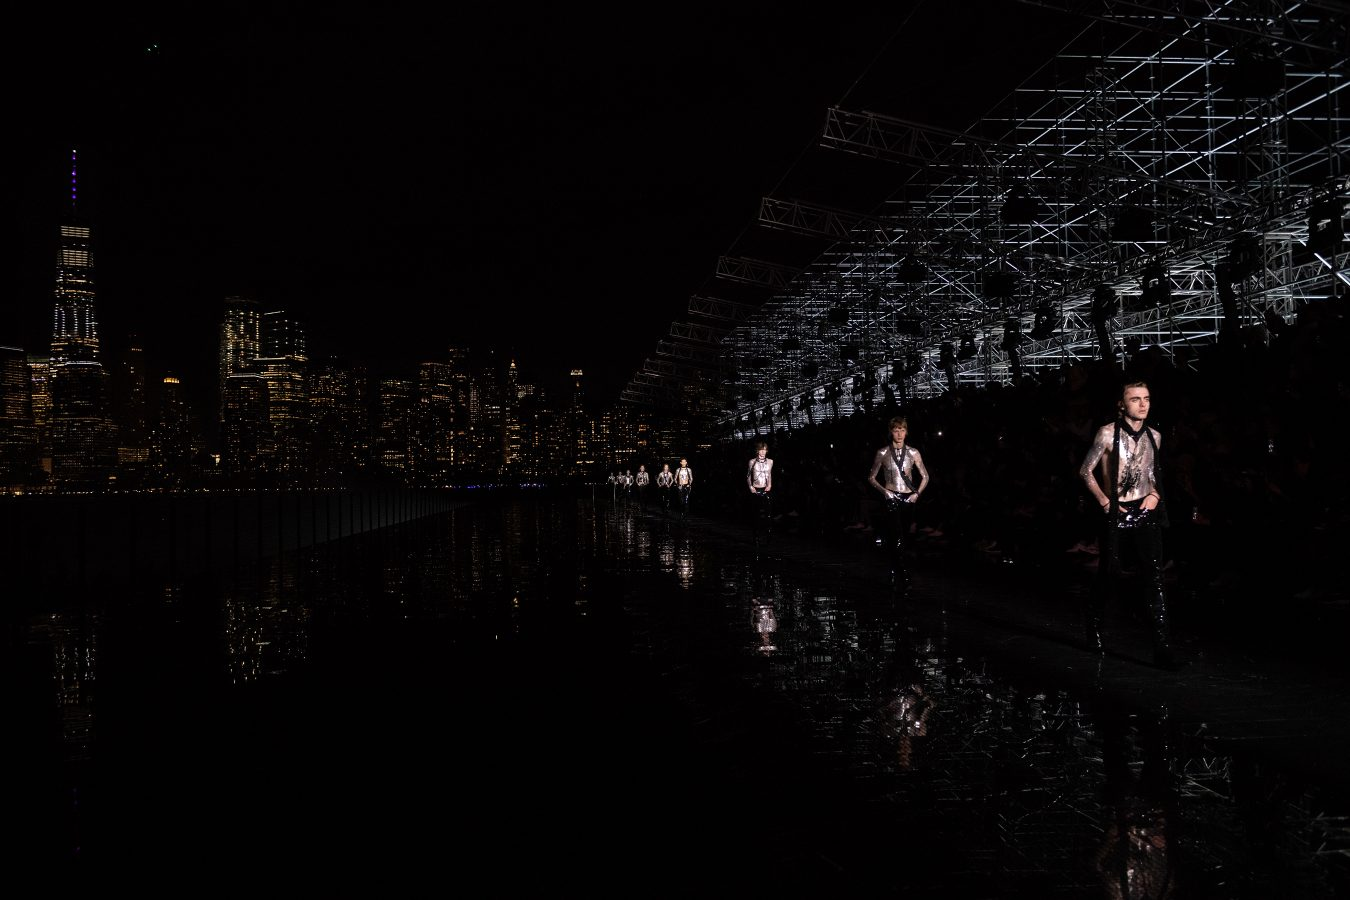 Saint Laurent Spring 2019 Men's Fashion Show Staging